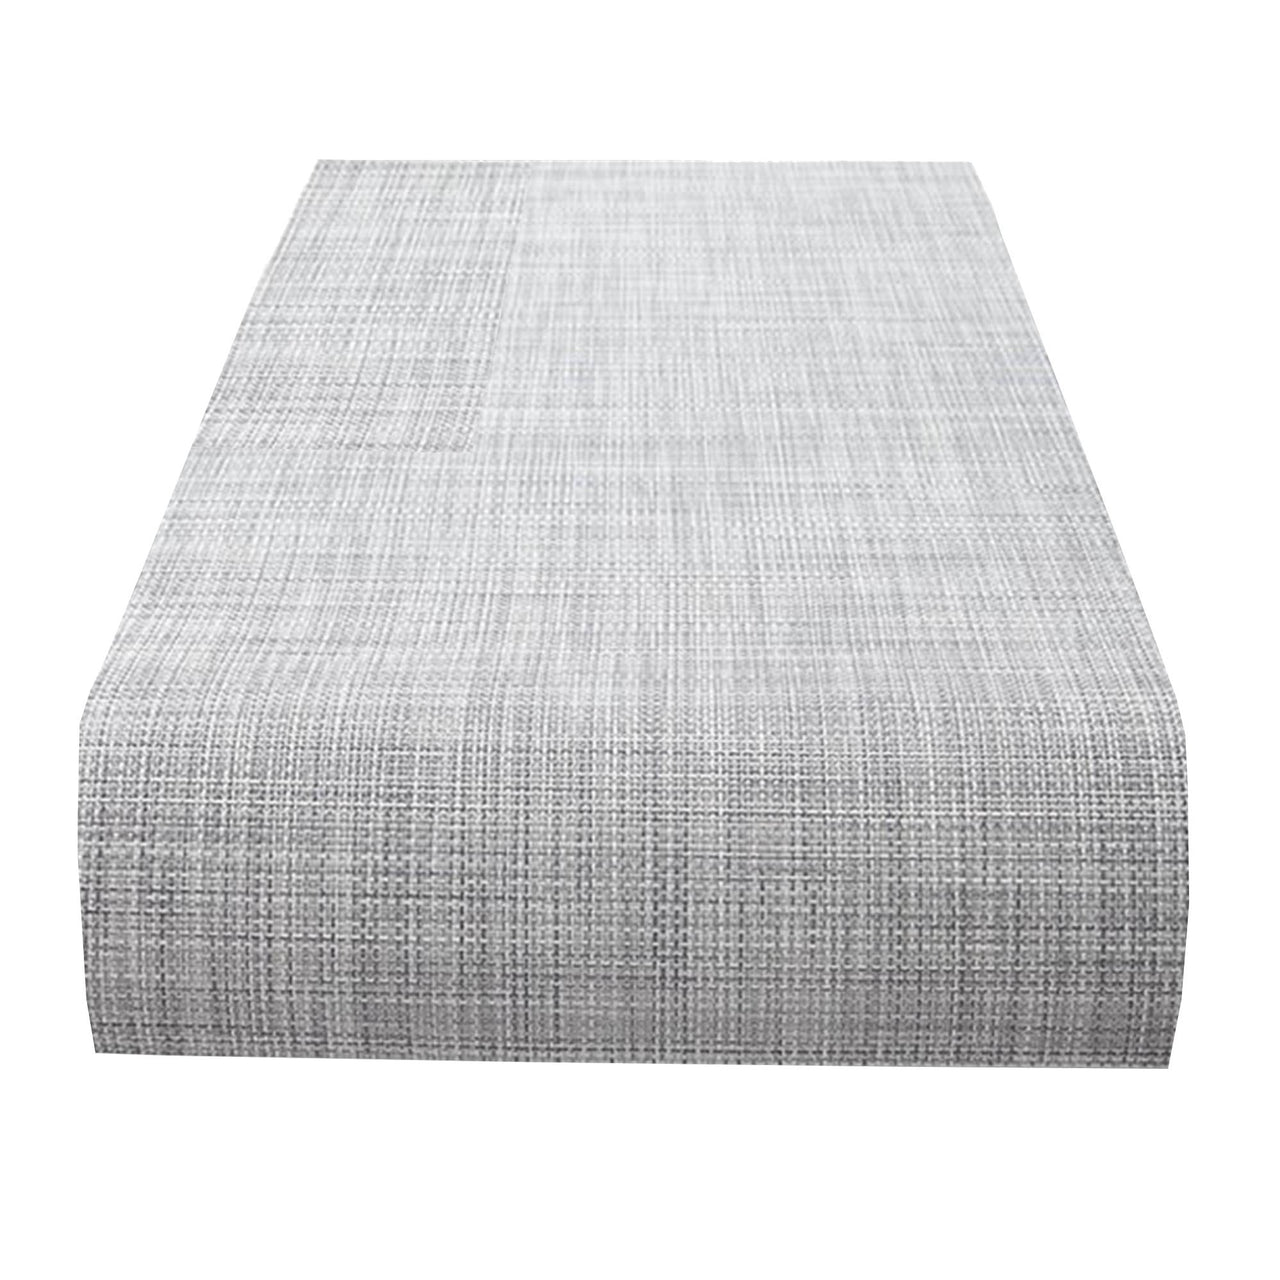 Mini Basketweave Table Runner: Mist